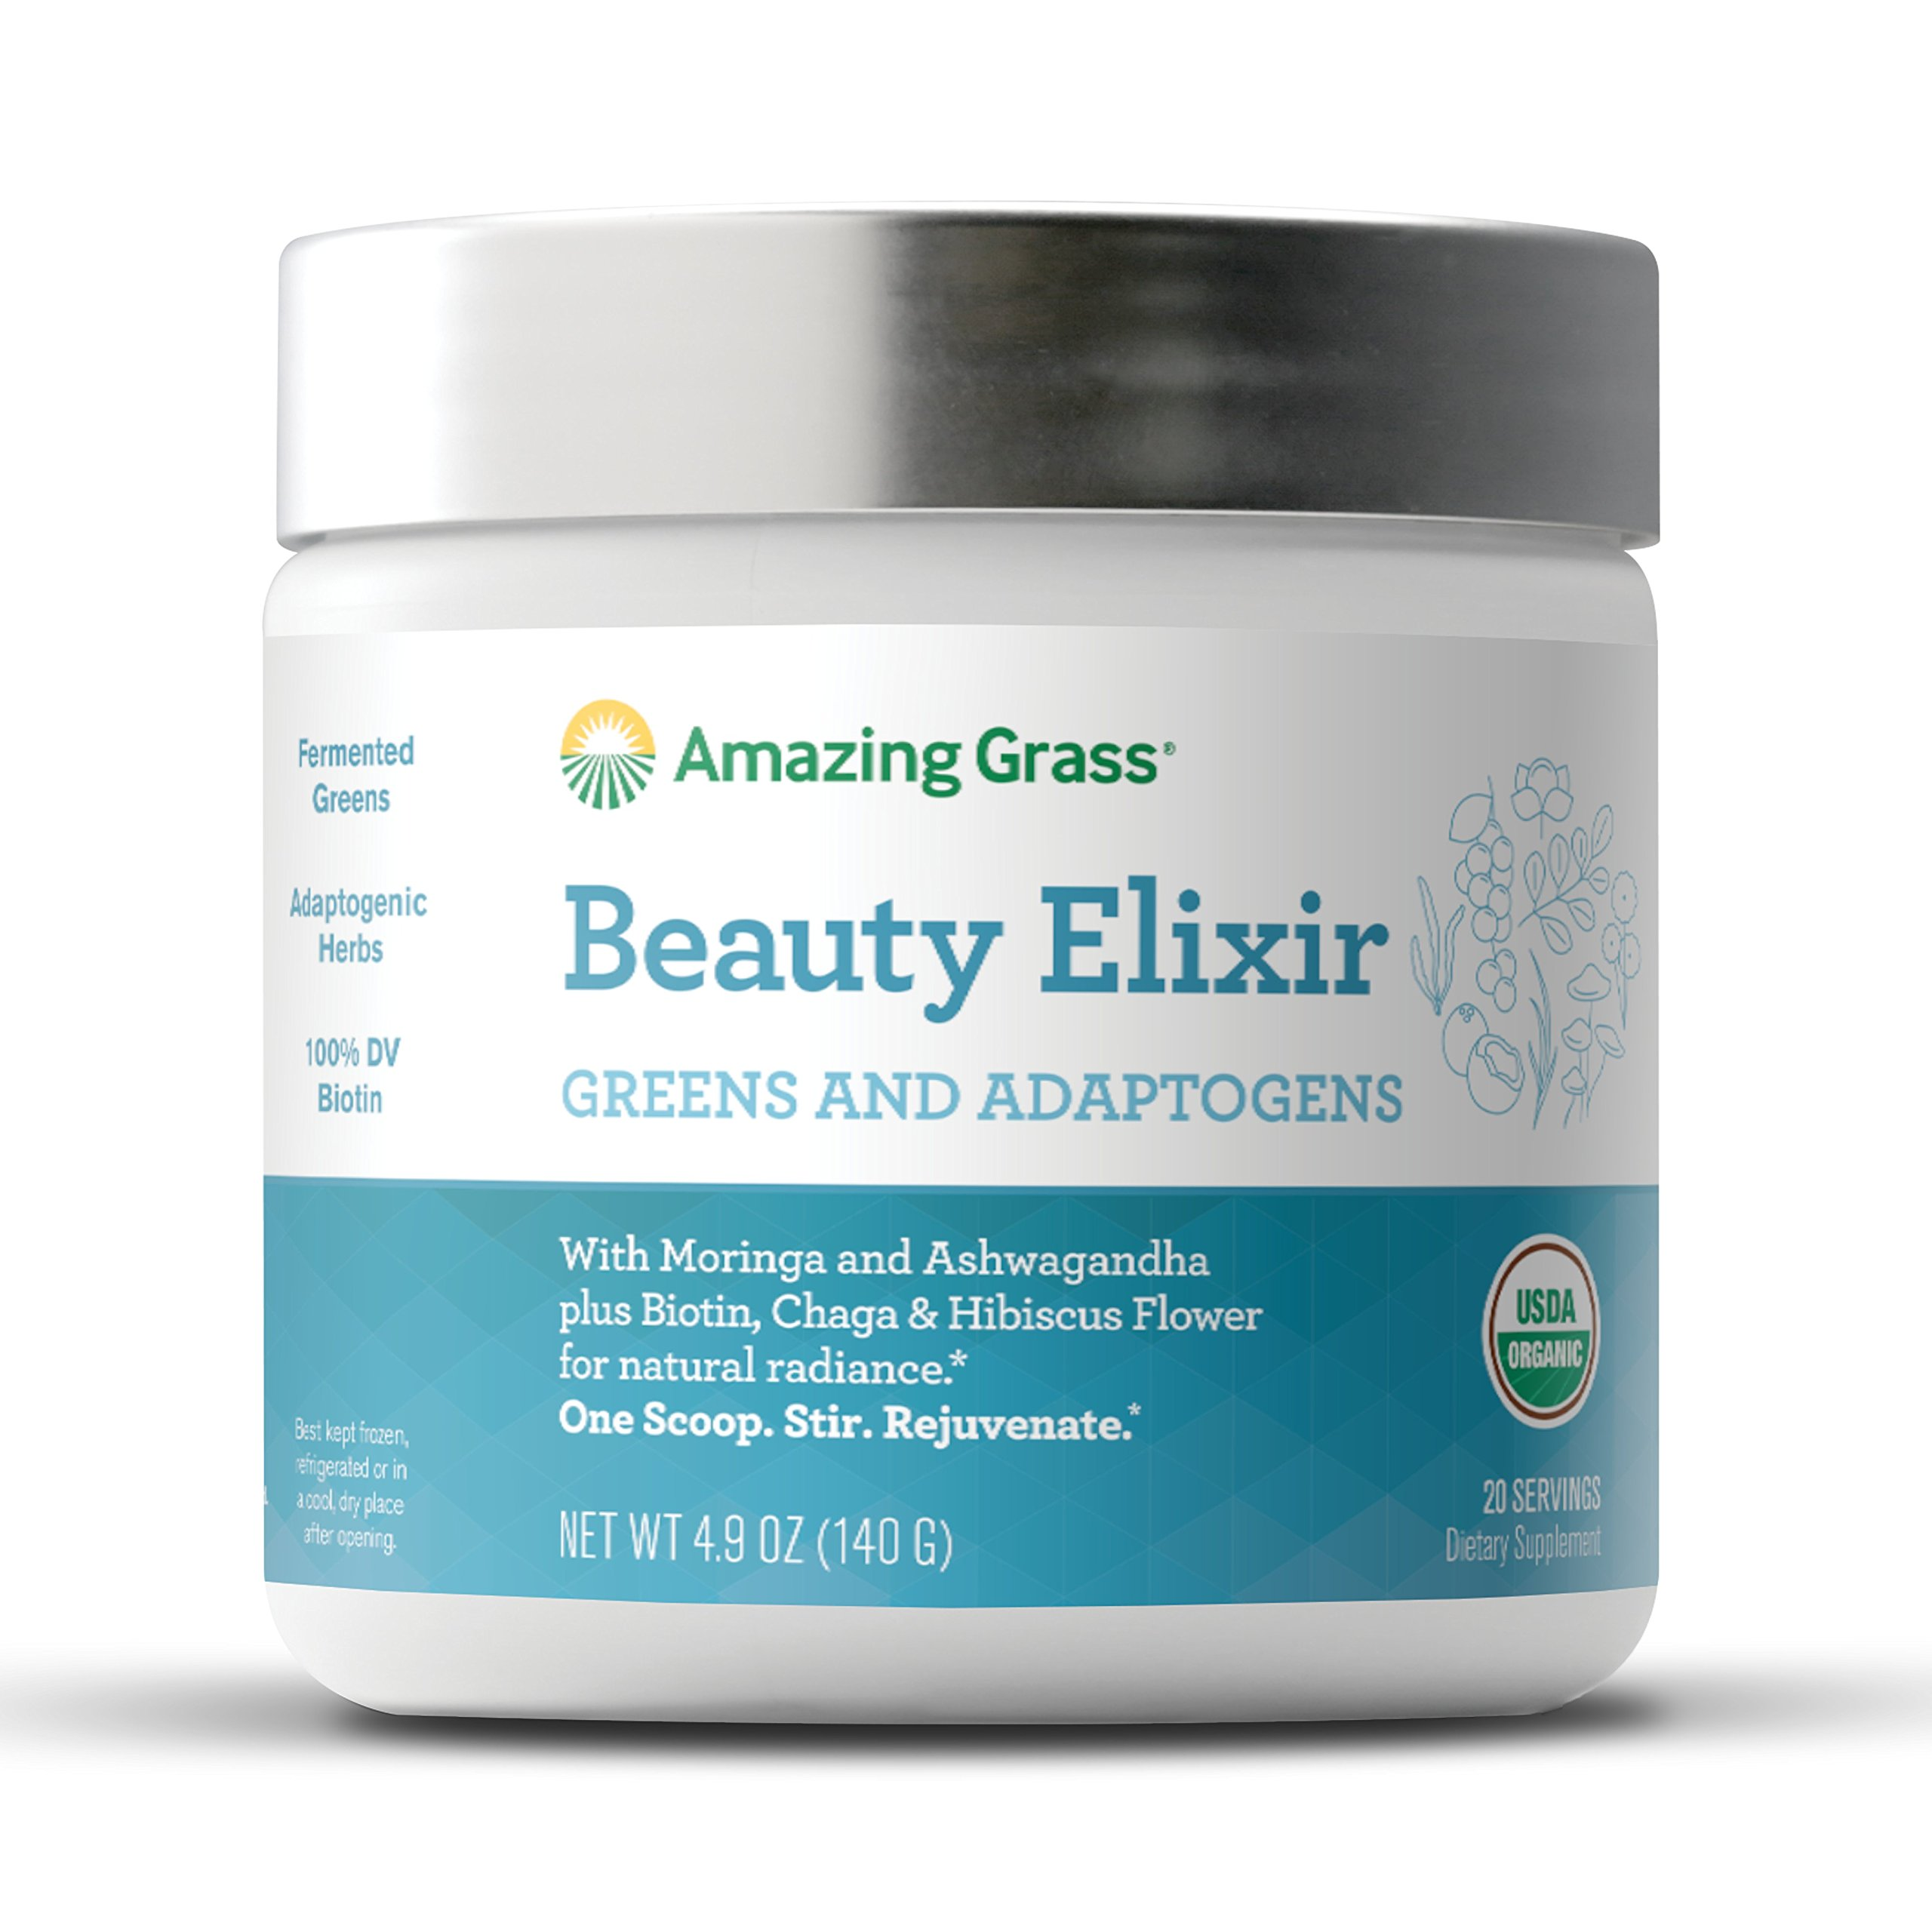 Amazing Grass Beauty Elixir, Greens and Adaptogens Organic Powder, 20 Serving Tub, 4.9 oz